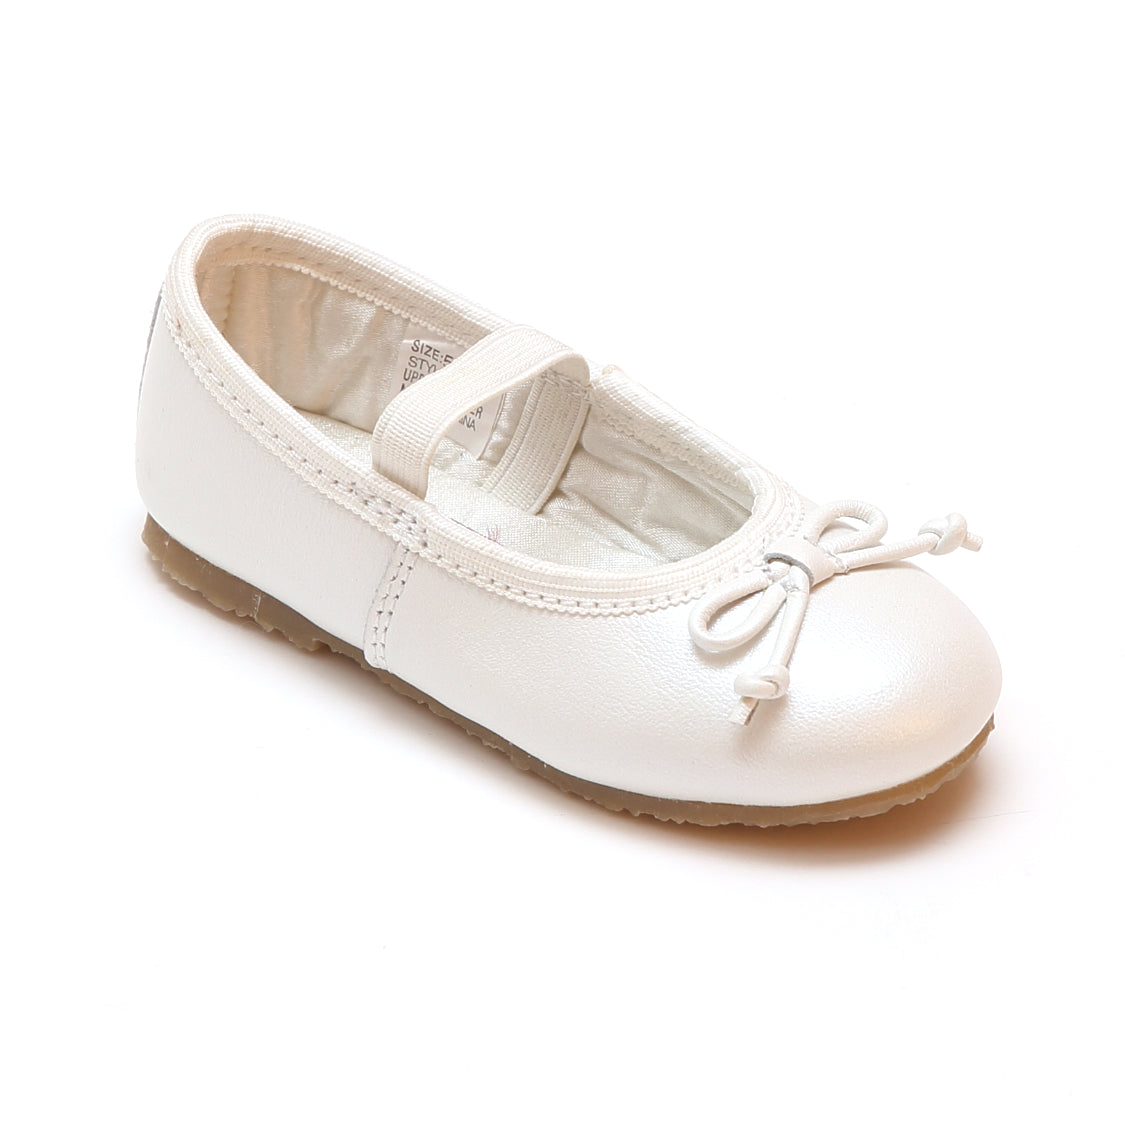 L'Amour Shoes Girls 400 White Bow